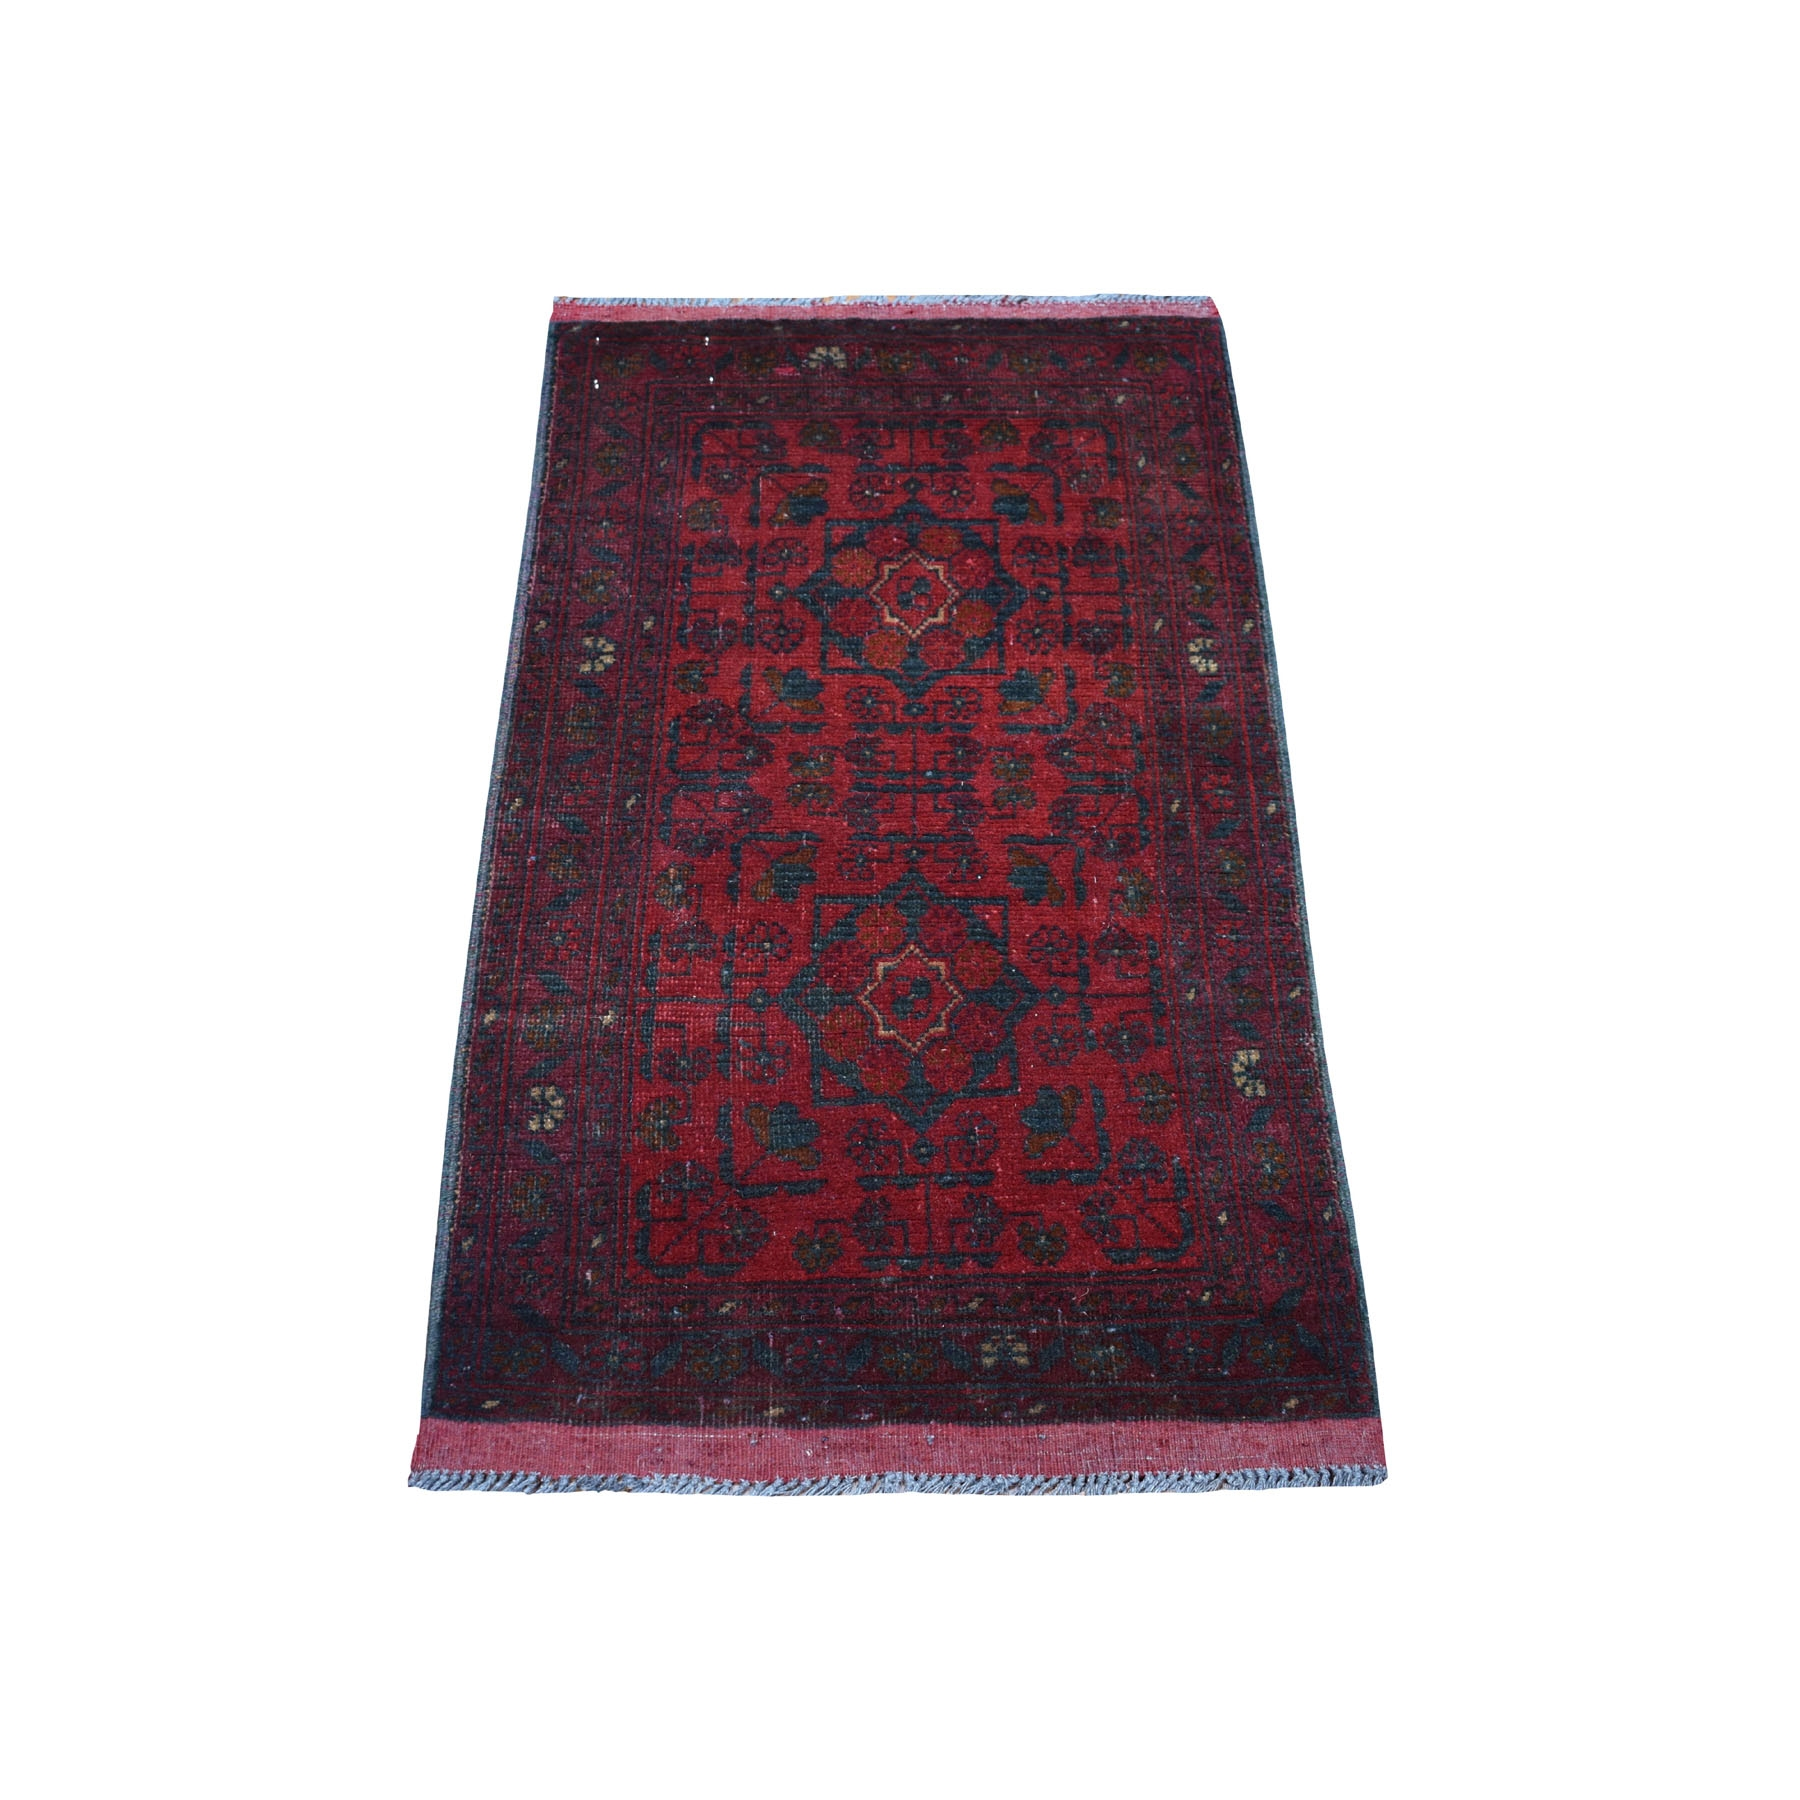 "1'10""x3'4"" Deep and Saturated Red Geometric Afghan Andkhoy Pure Wool Hand Woven Oriental Rug"